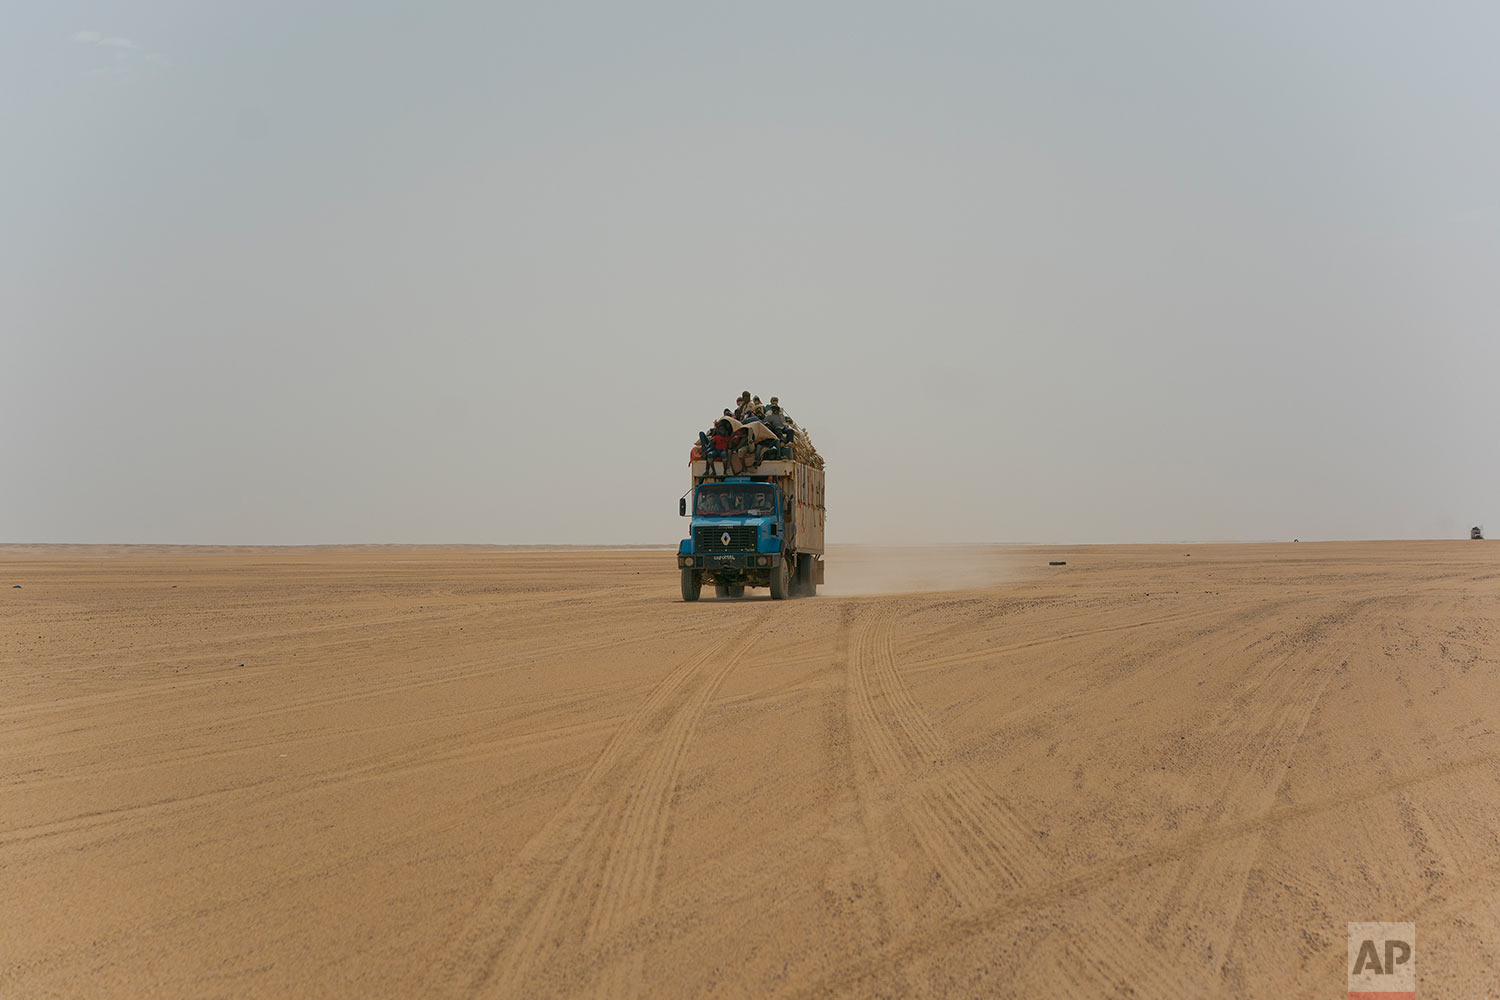 A truck carrying goods and migrants drives through Niger's Tenere desert region of the south-central Sahara on June 3, 2018. (AP Photo/Jerome Delay)